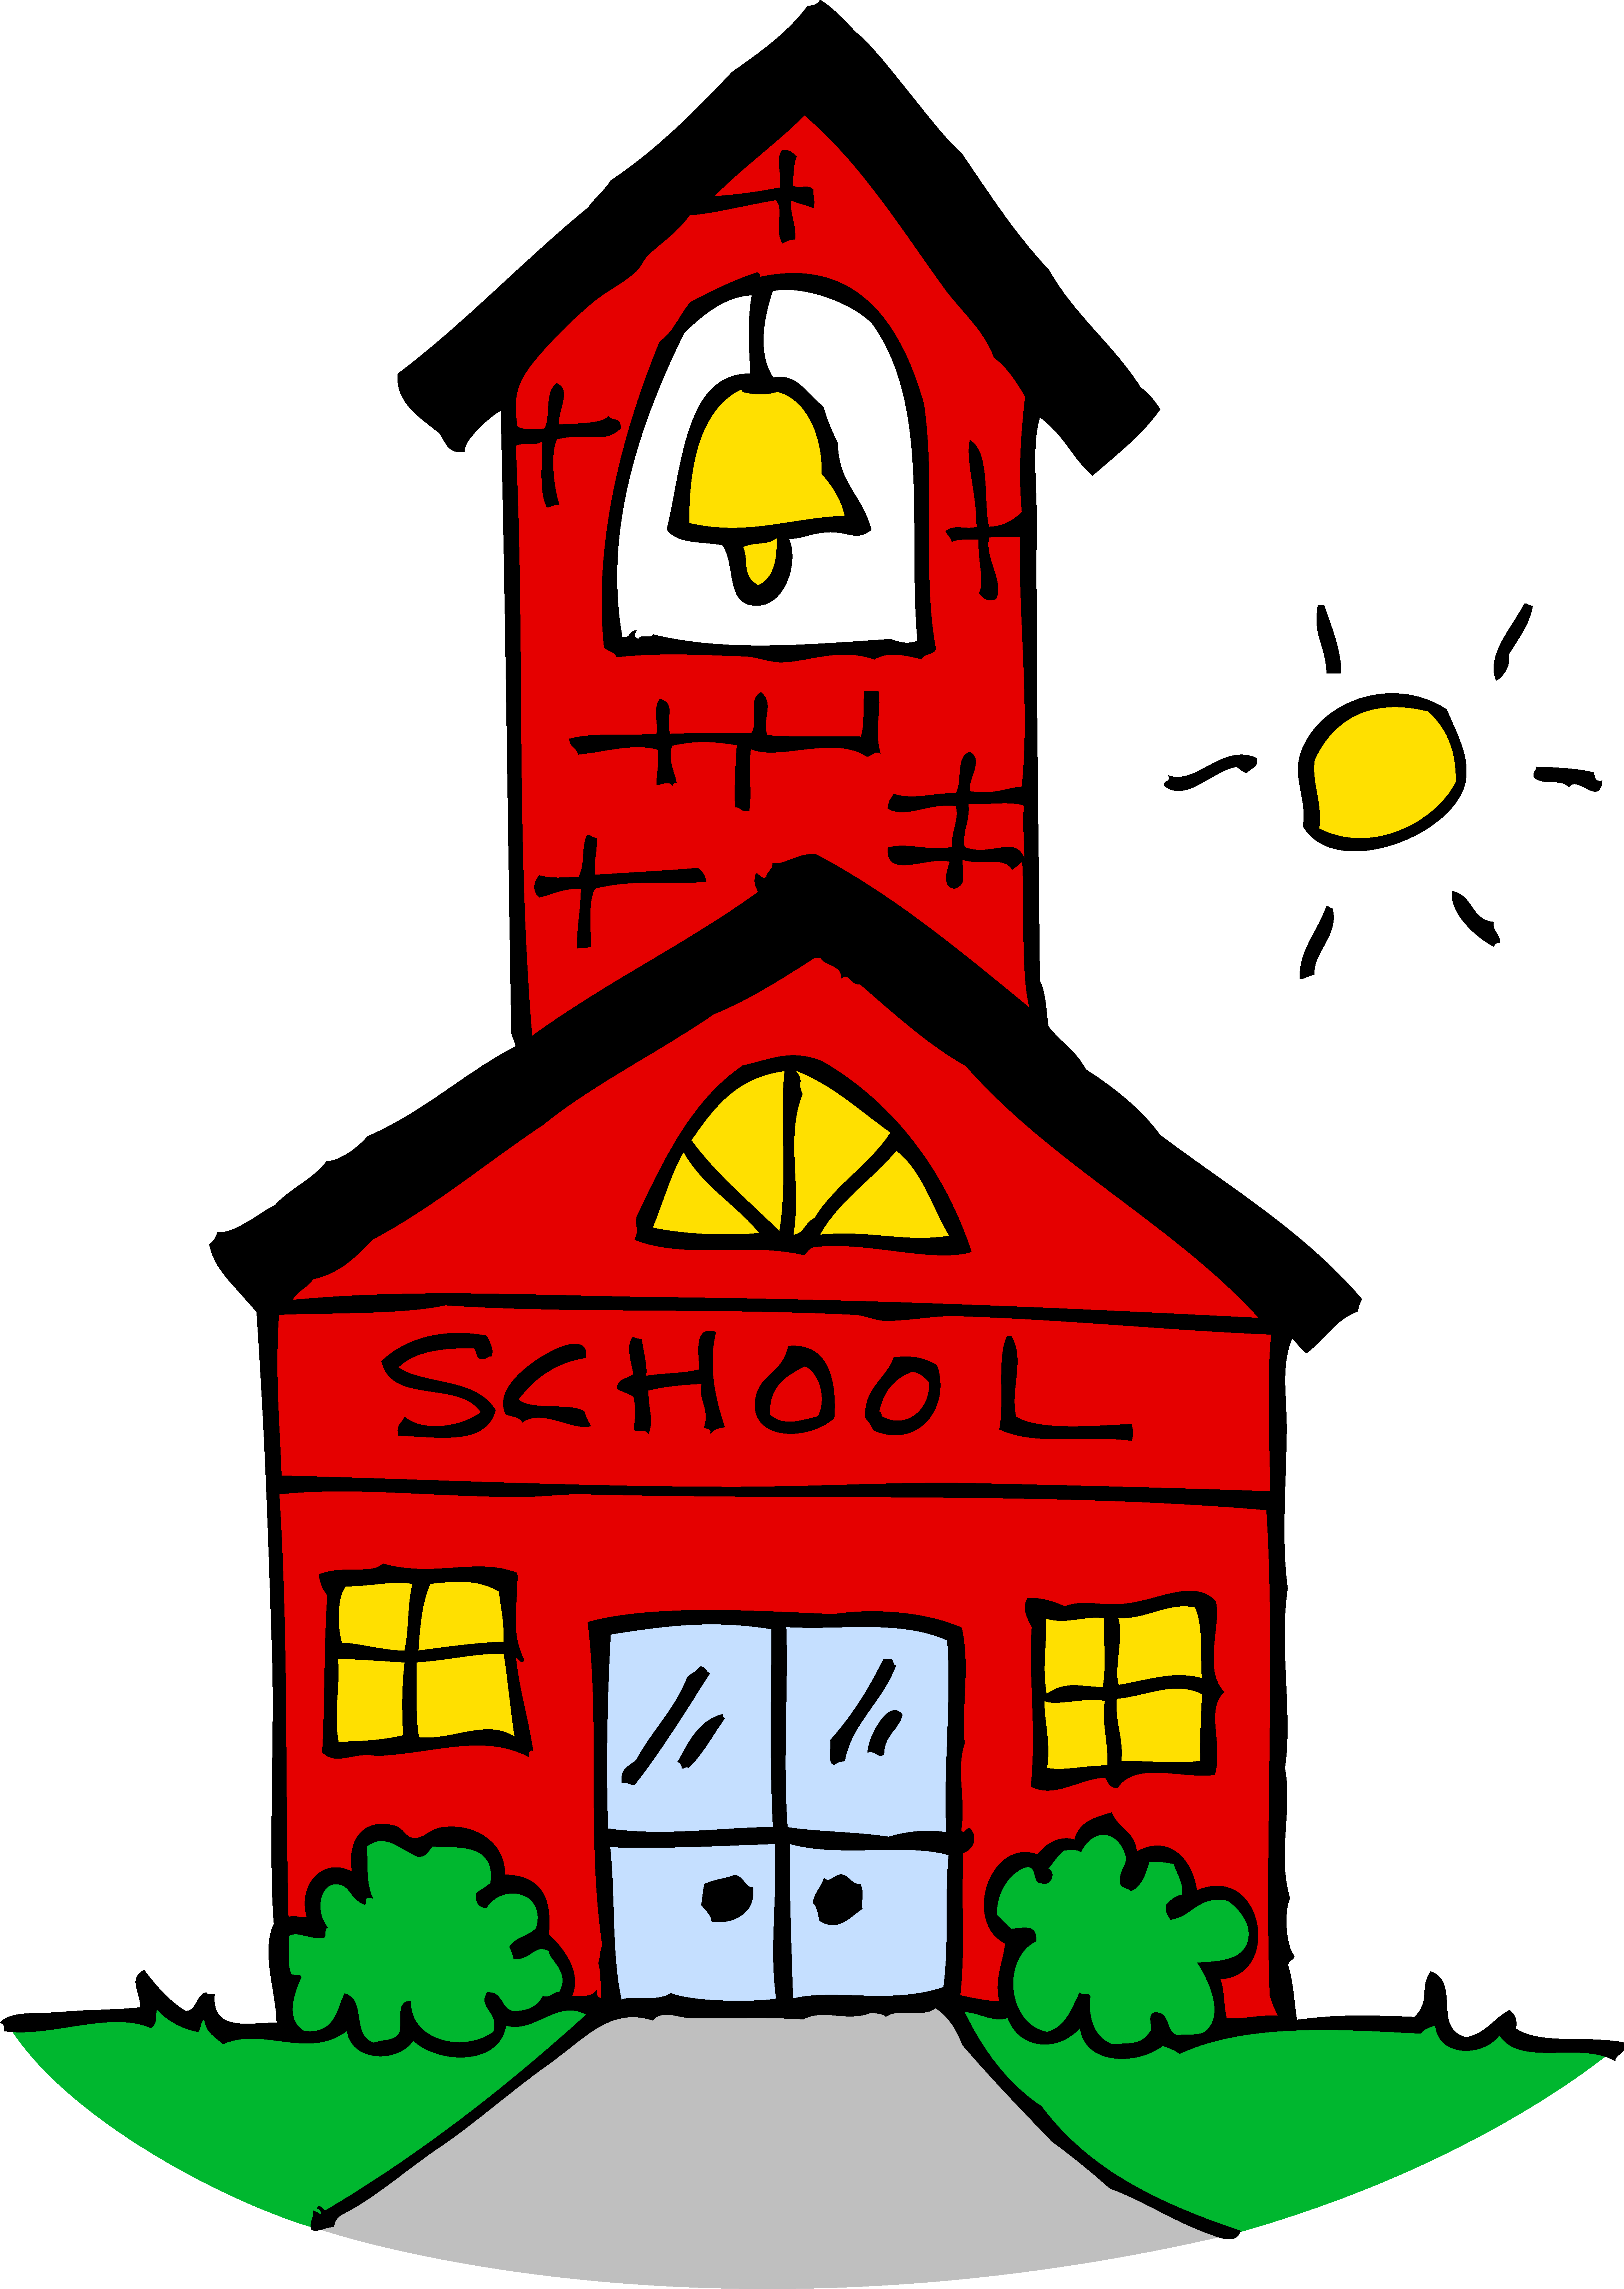 Covered clipart free school  Download to House Clipart